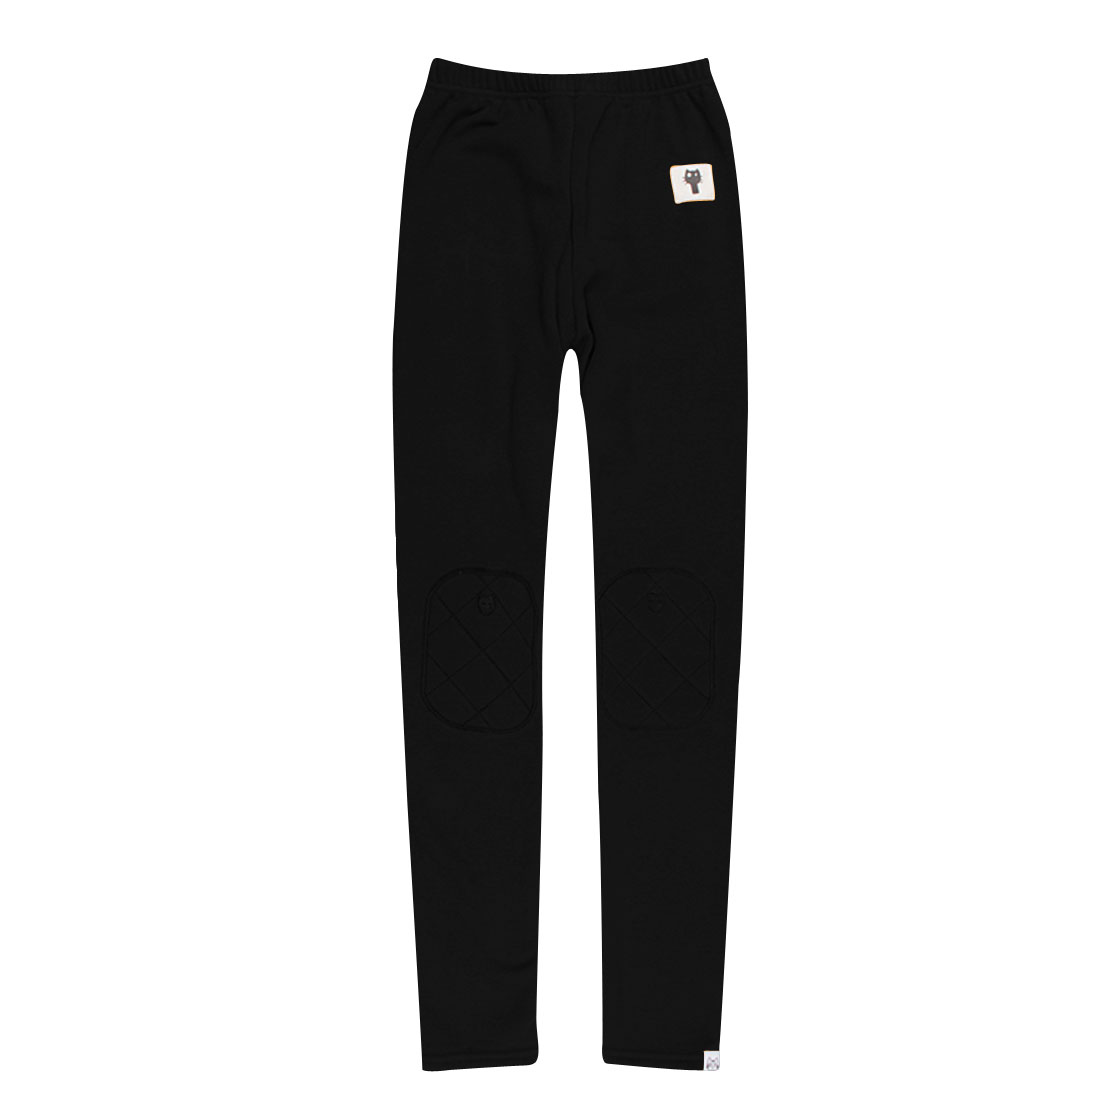 Ladies Black Stretchy Winter Elastic Waist Casual Chic Leggings XS